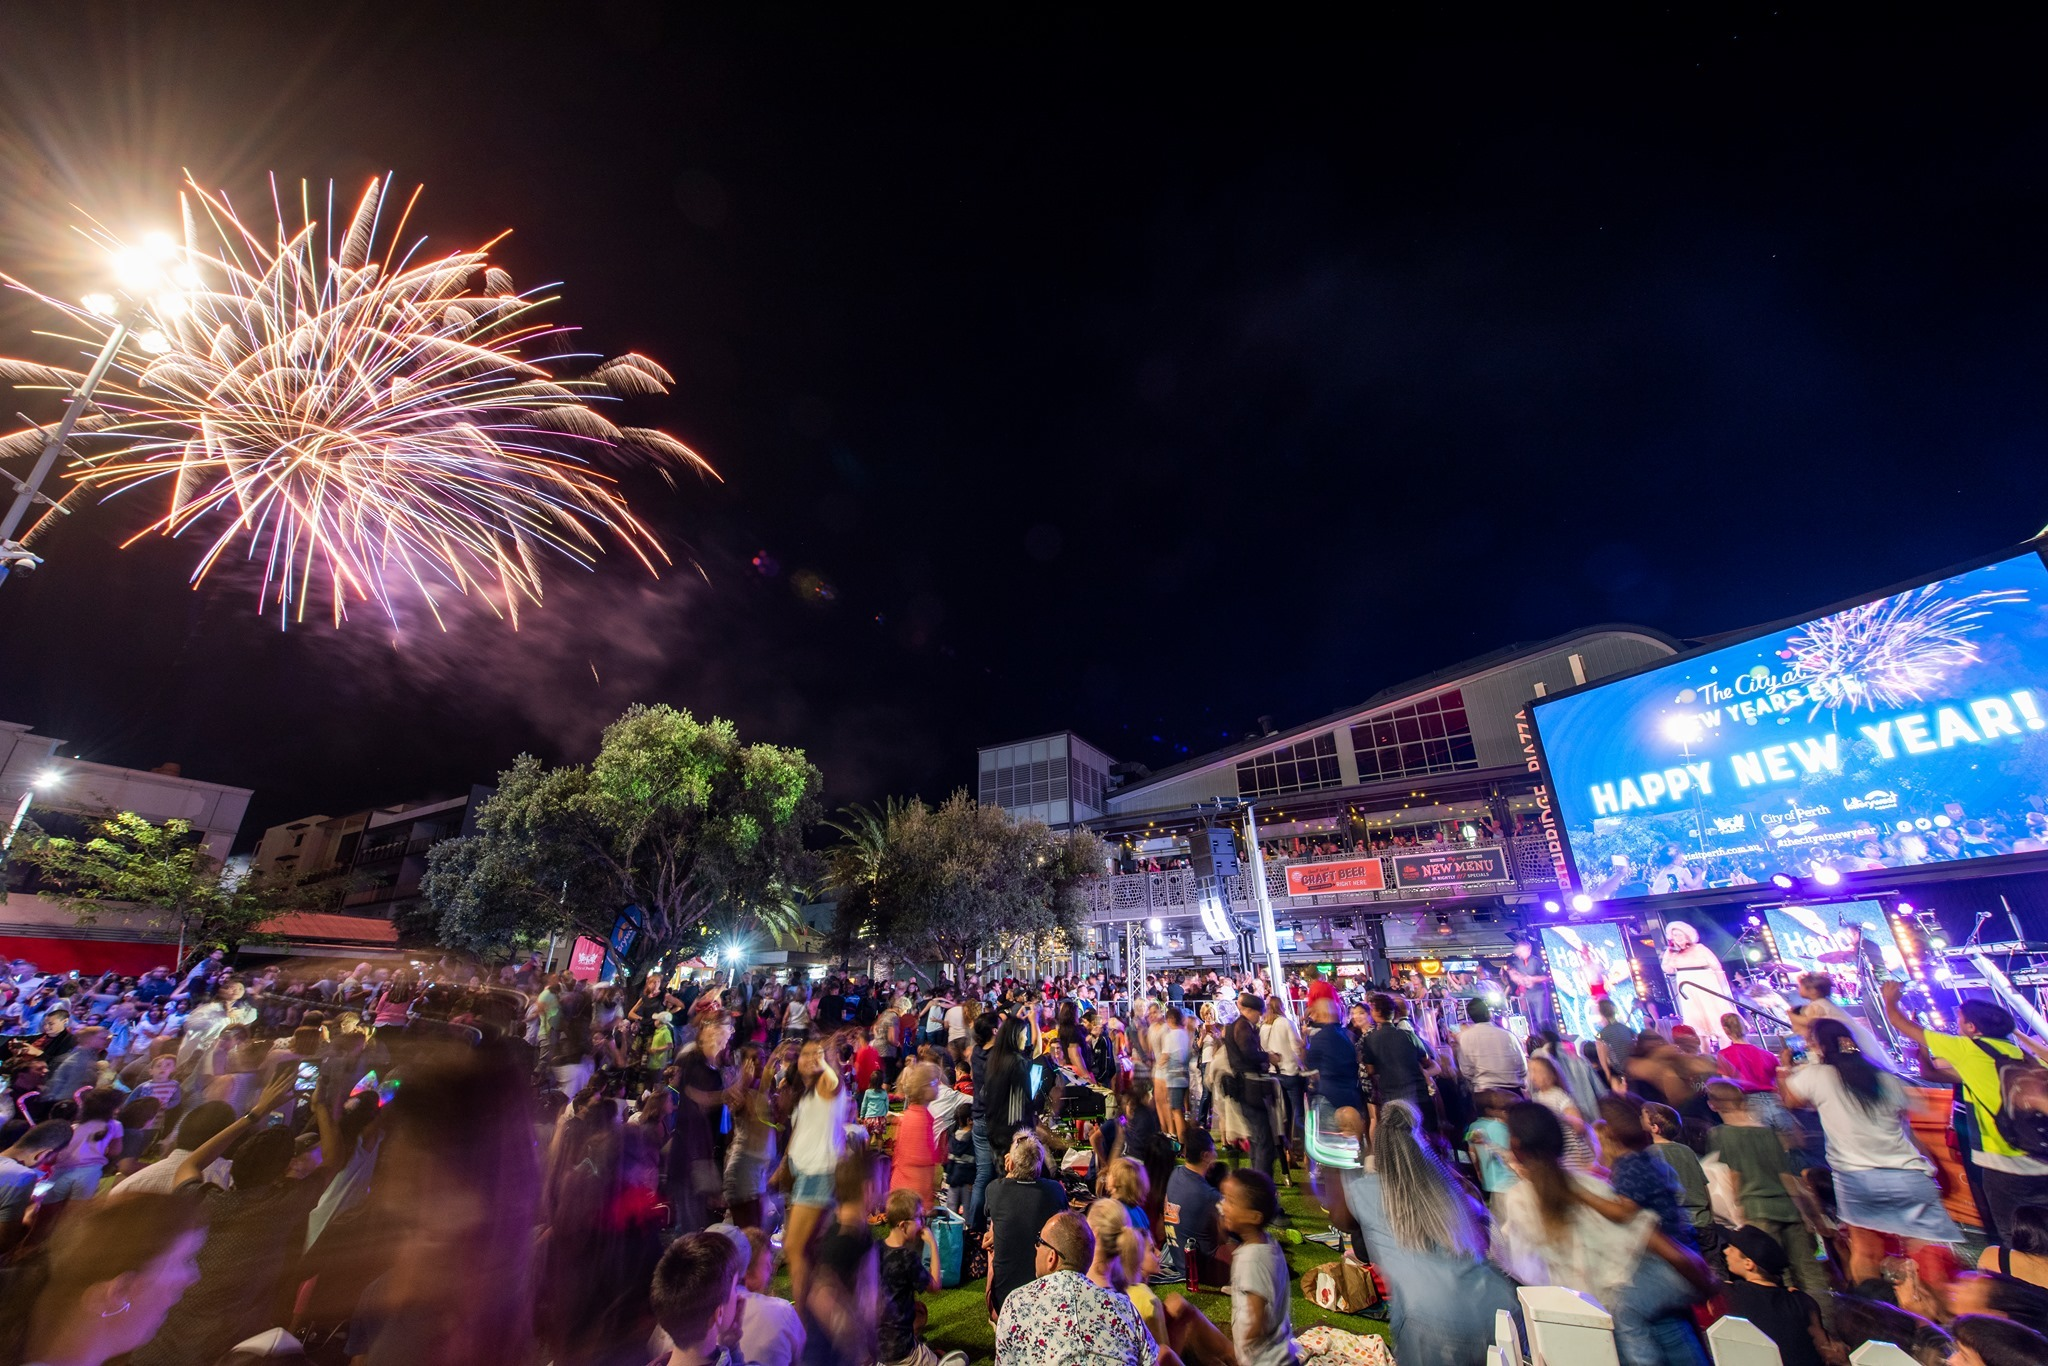 「The City at New Year's Eve Perth」の画像検索結果""